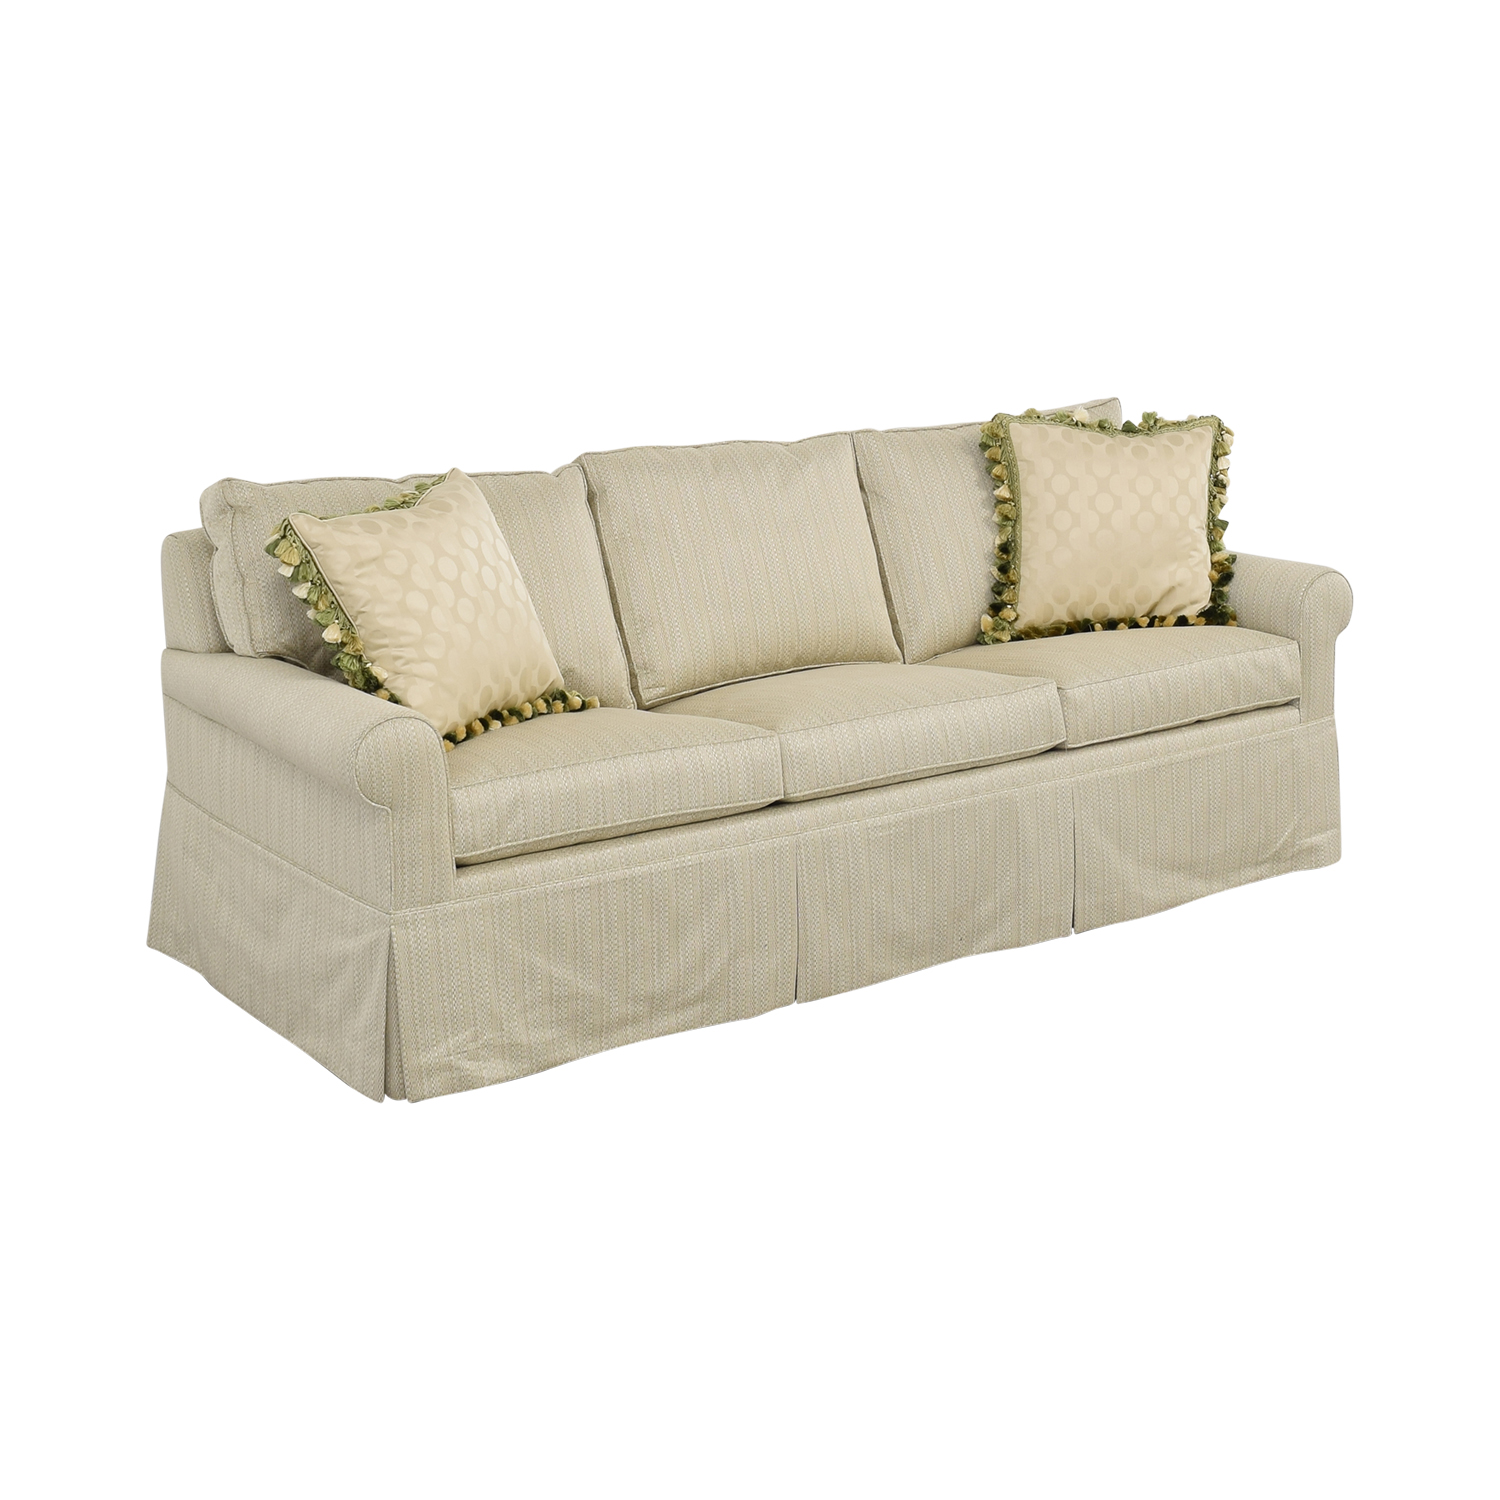 Carlyle Carlyle Queen Plus Sleeper Sofa price